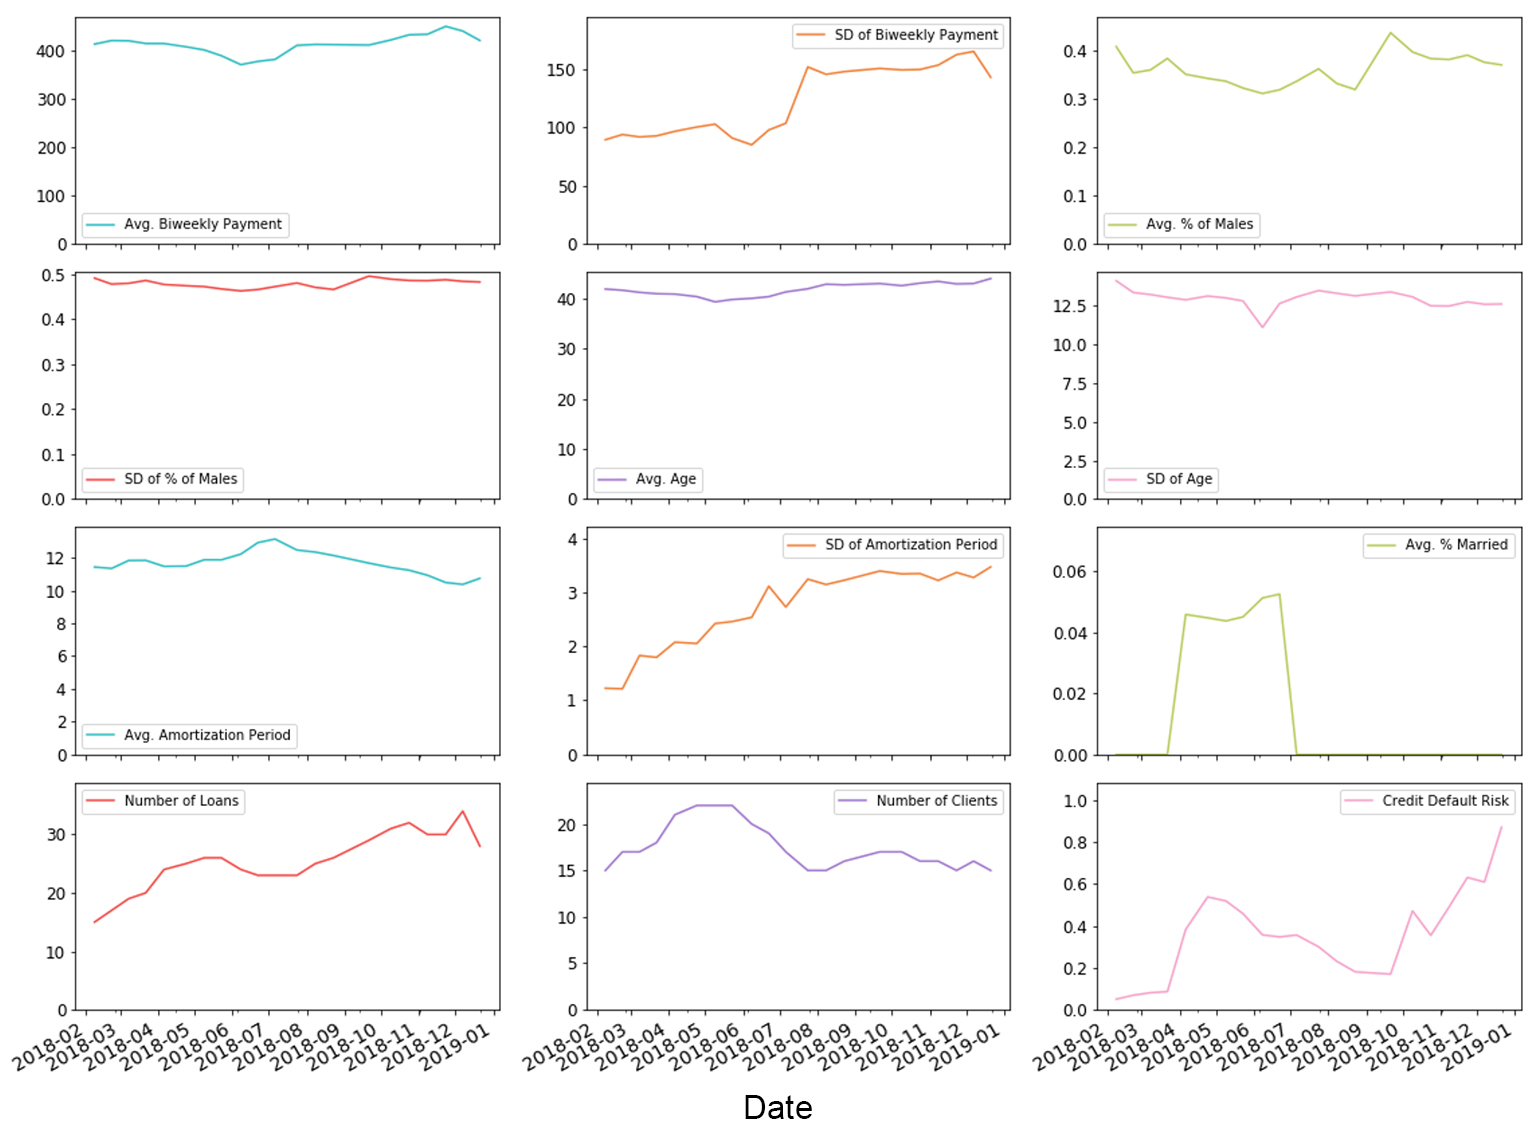 Time Series of a lender's portfolio characteristics and her credit default risk. The lender was selected randomly from lenders with more than 0.6 in credit default risk (high risk)